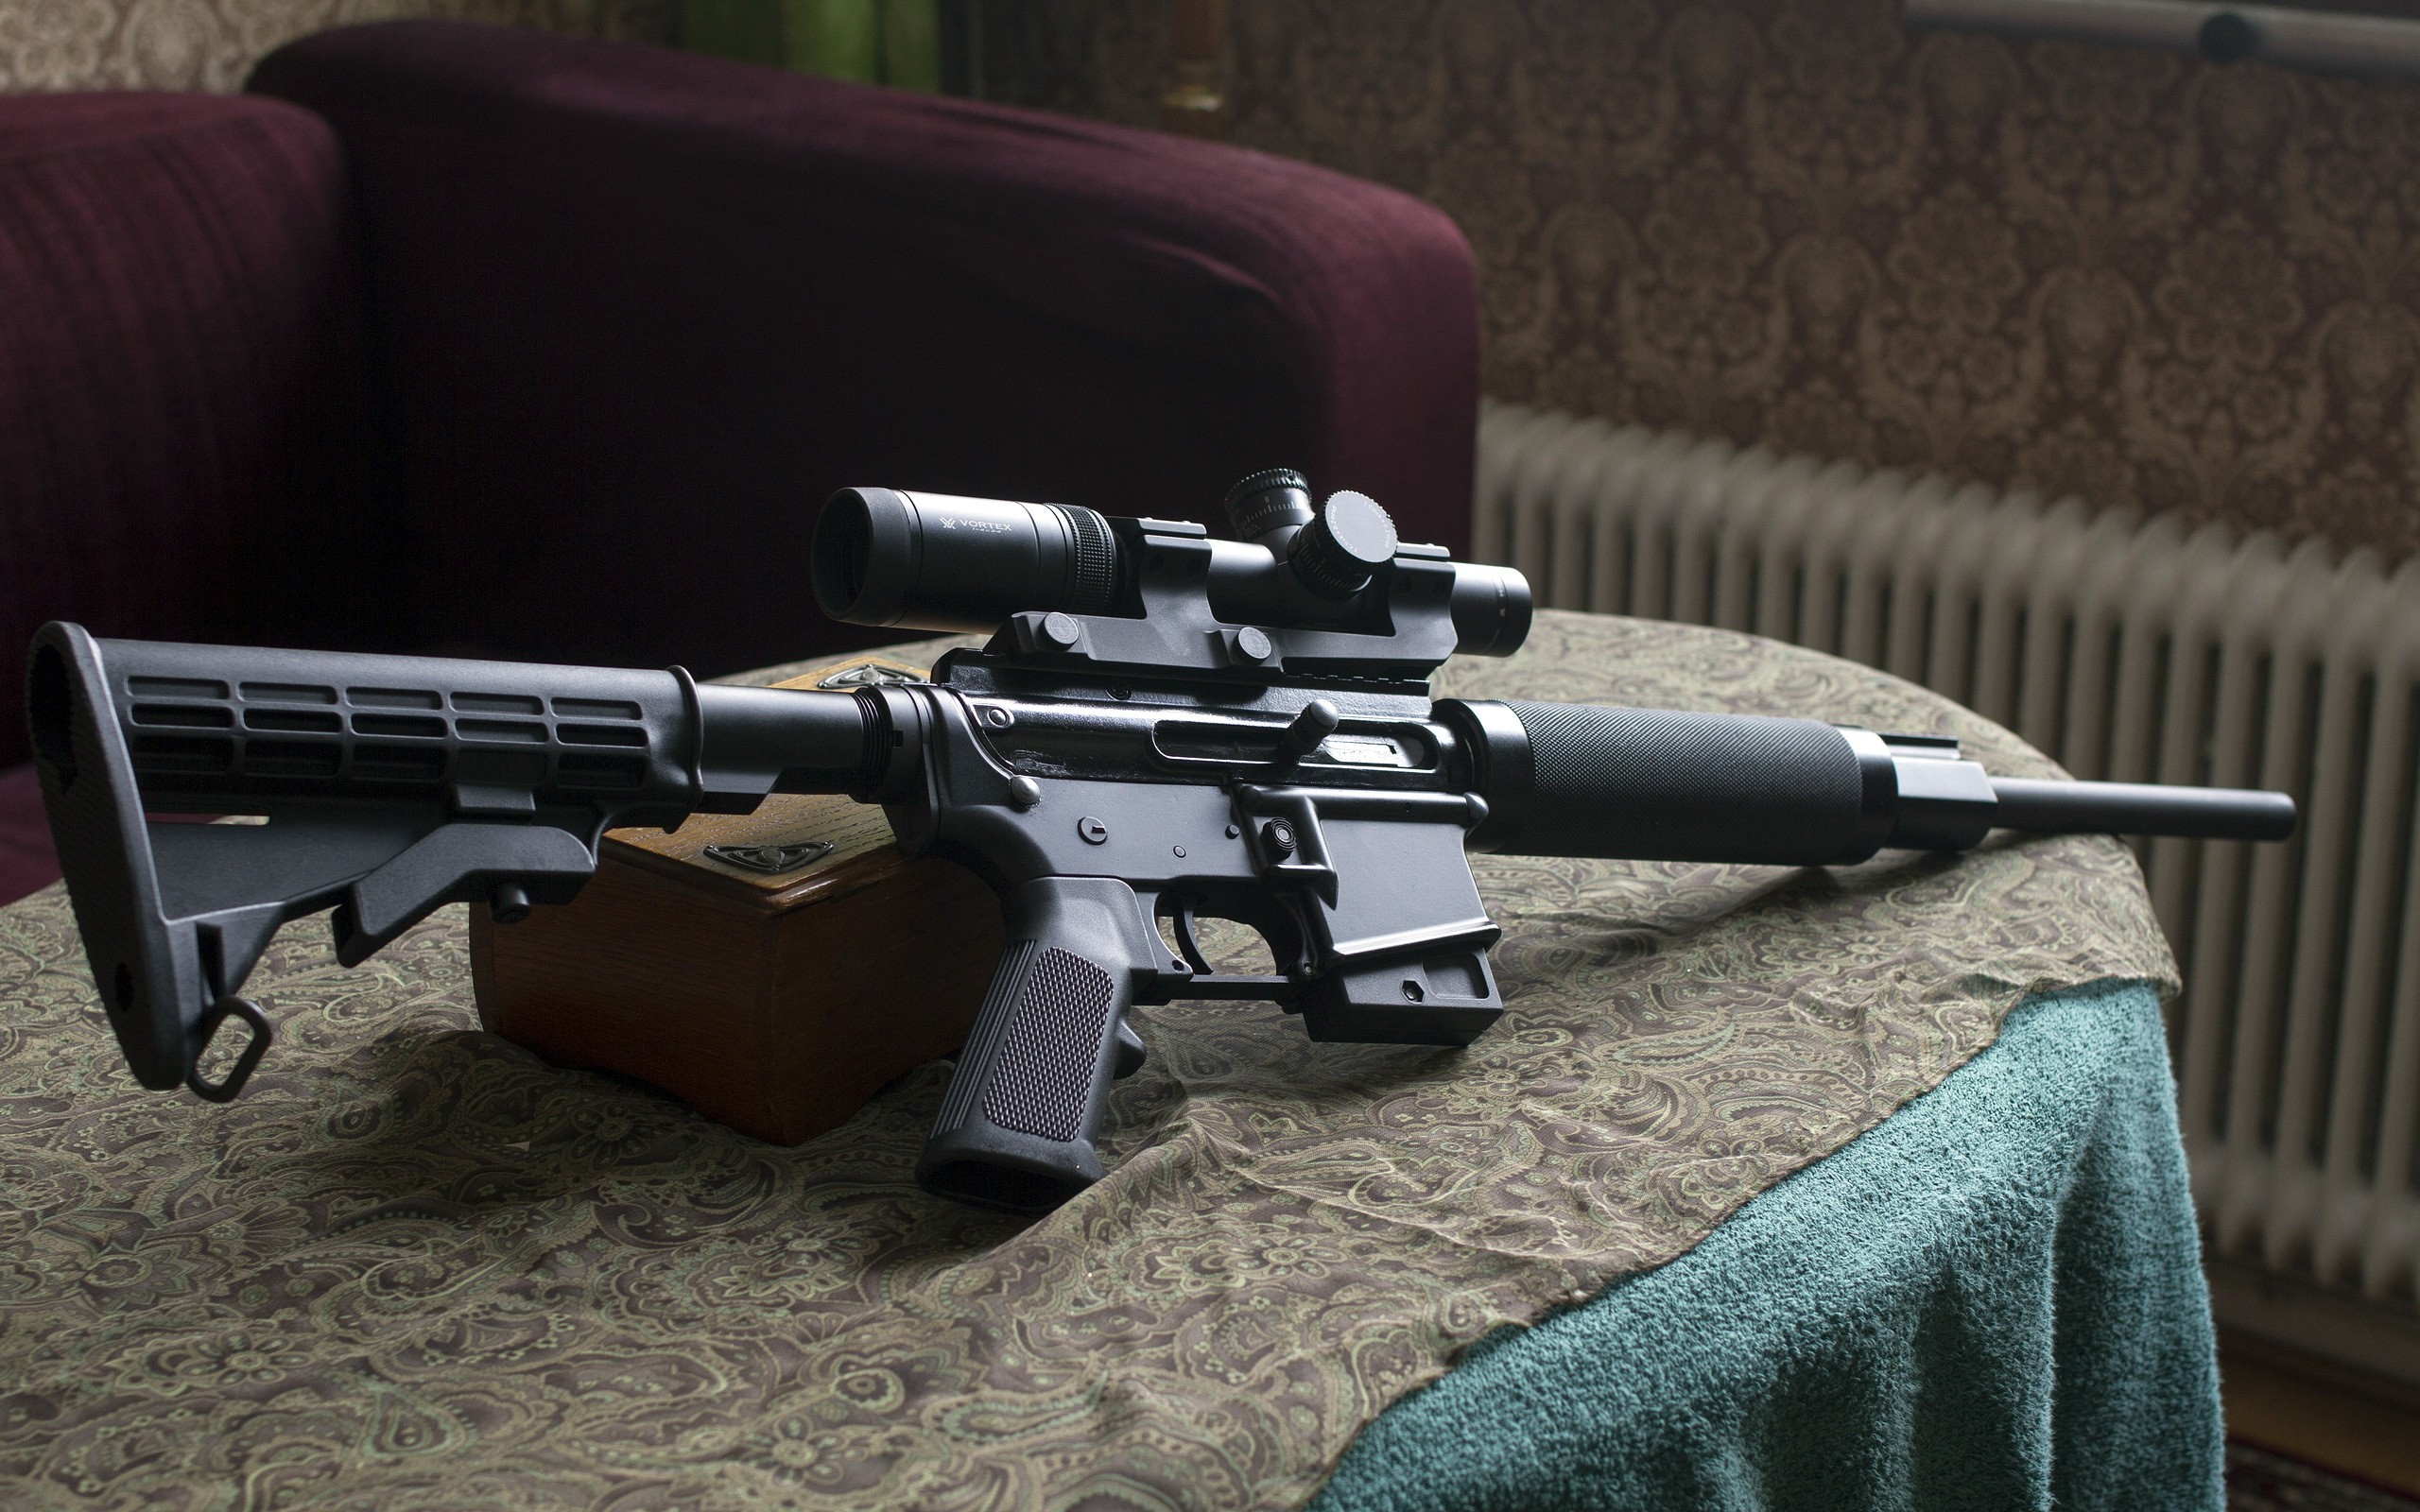 Ar 15 Wallpaper Download Free Beautiful Full Hd: Colt AR-15 Full HD Wallpaper And Background Image